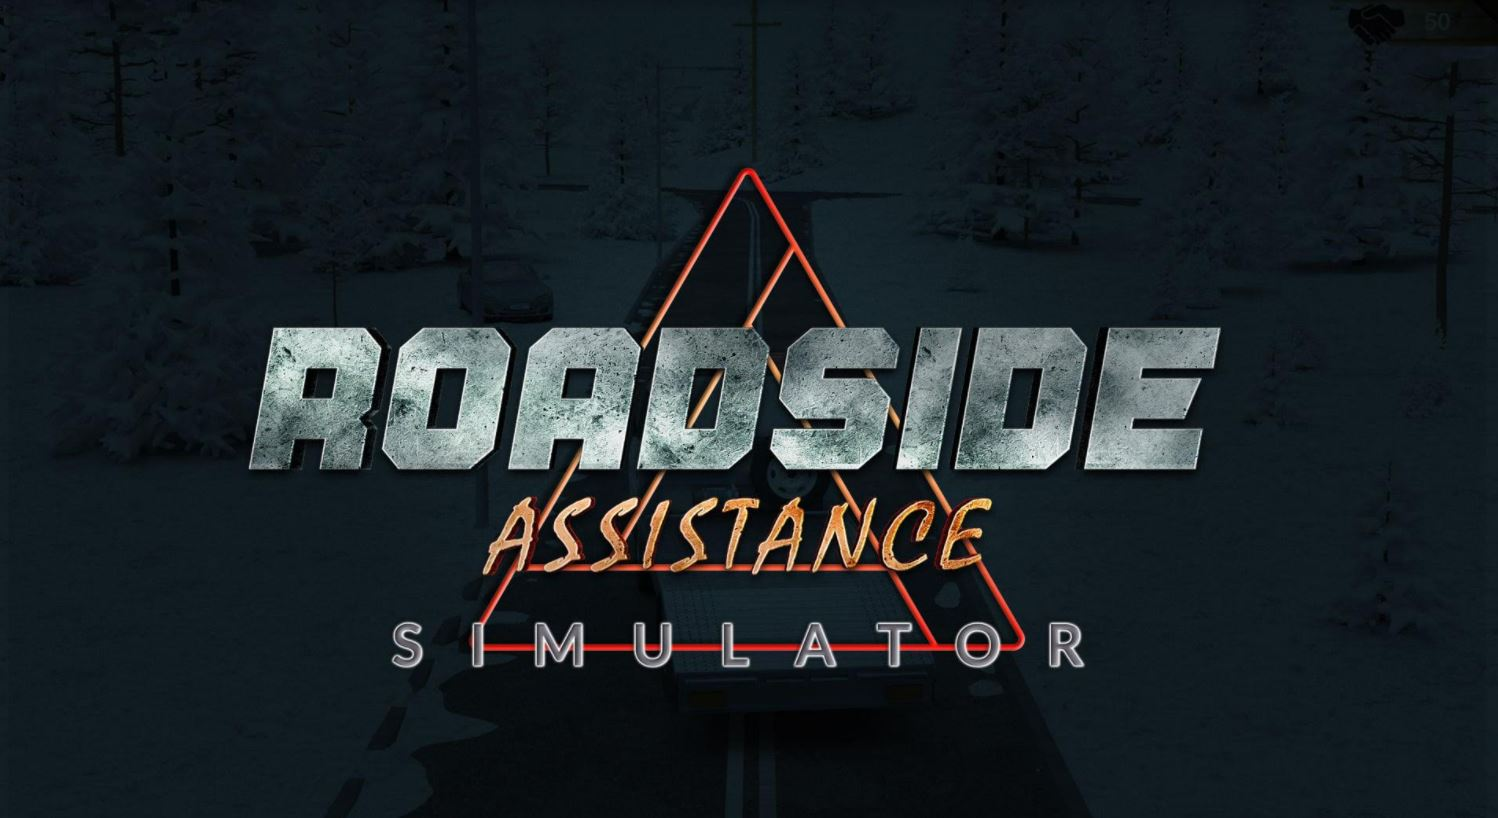 roadside-assistance-simulator-ps4-ps5-news-review-videos